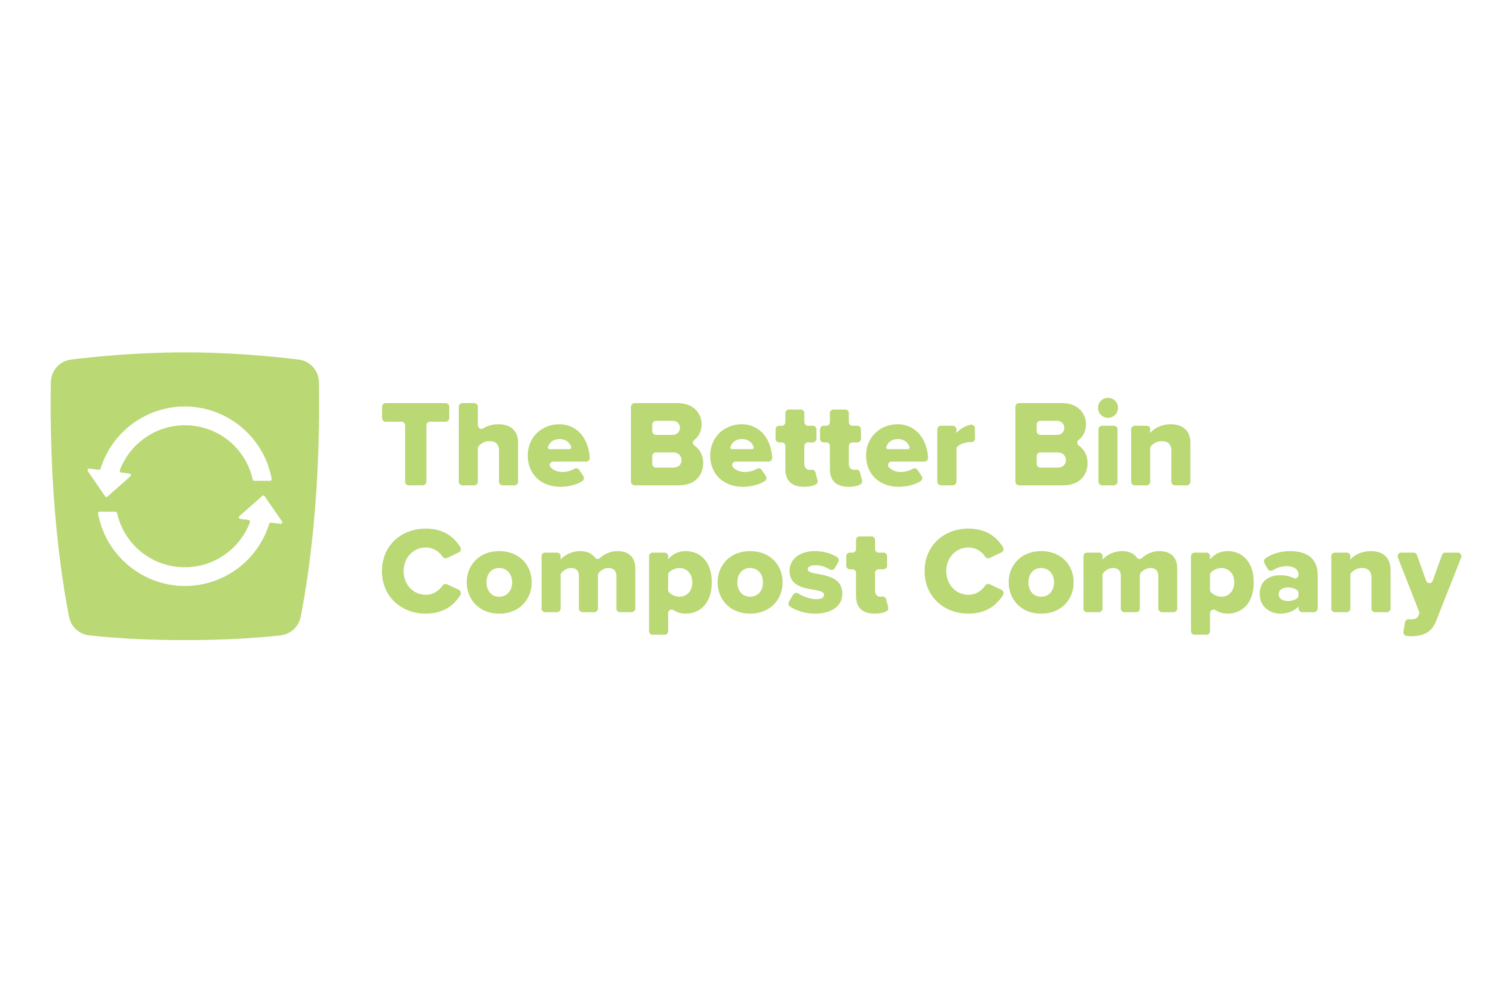 Better Bin Compost — Cincinnati's Curbside Compost Service